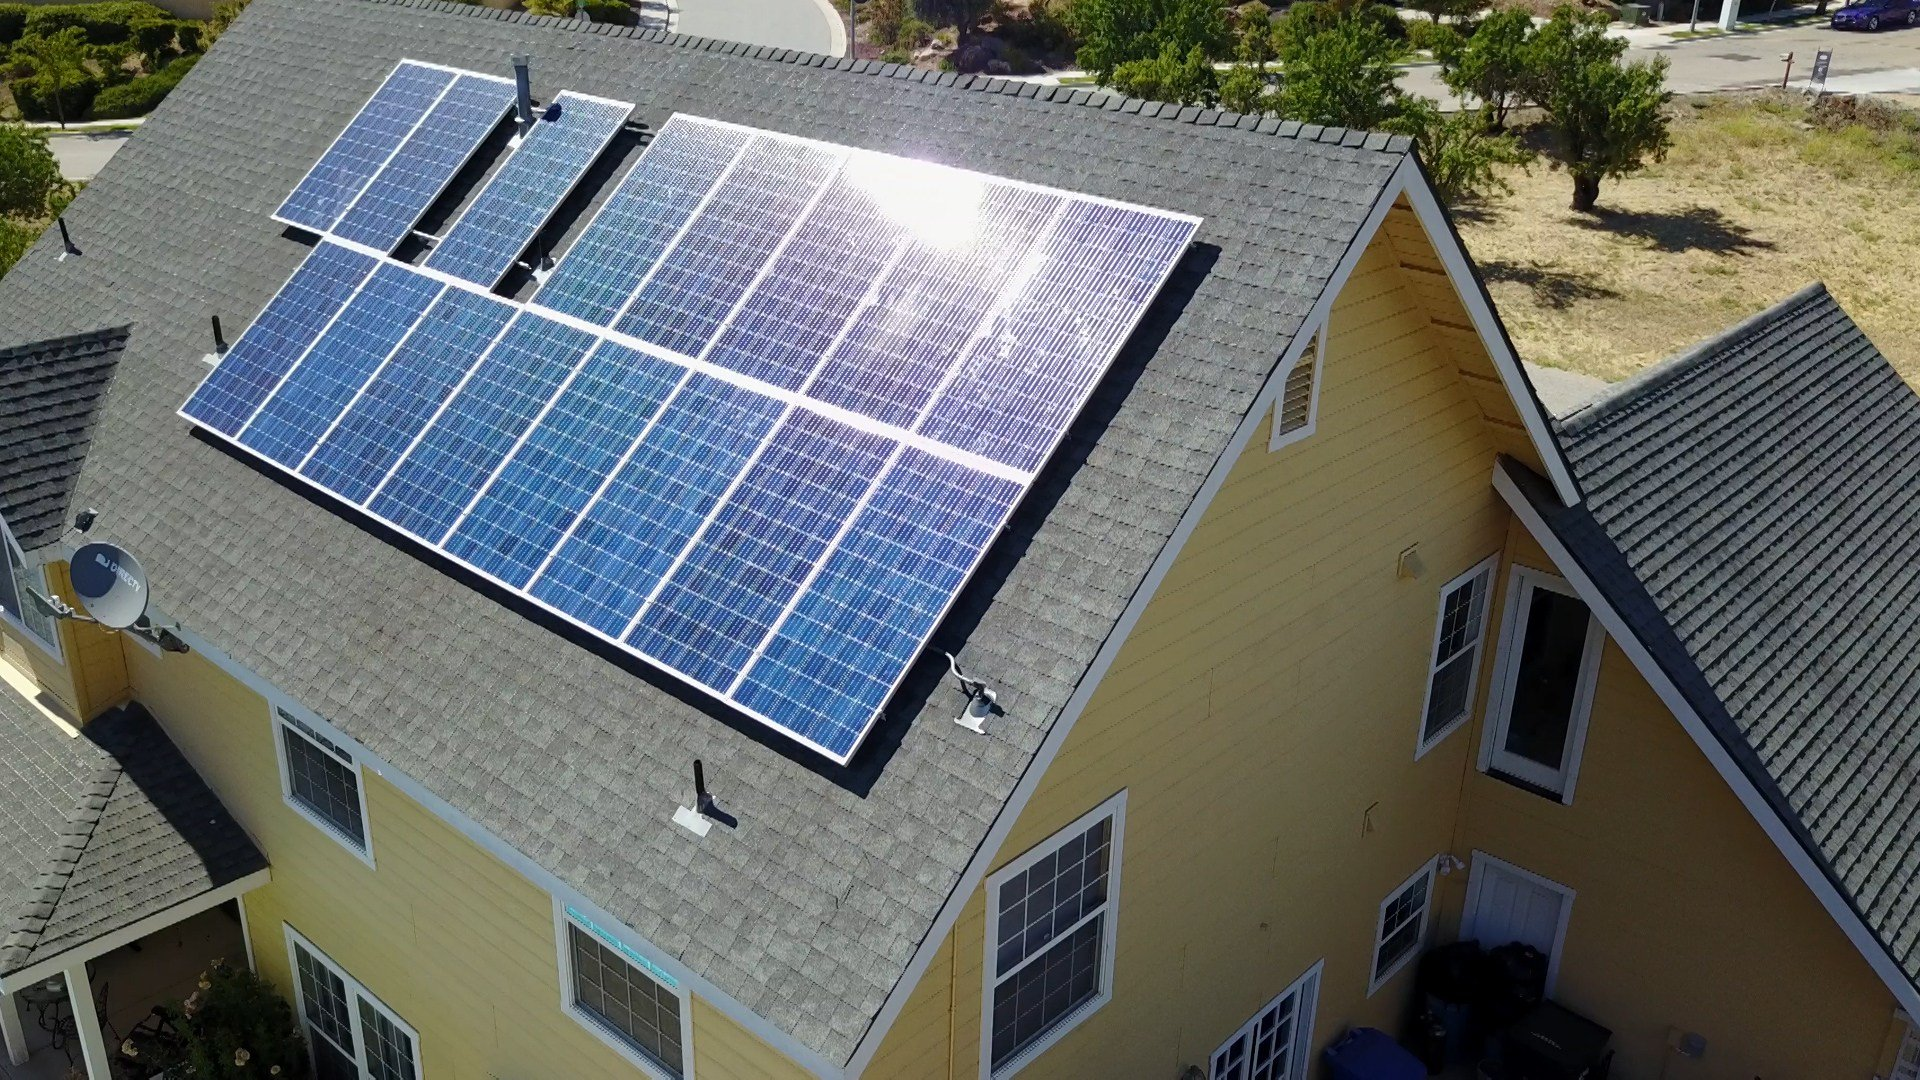 Solar panels to become mandatory on new California homes in 2020